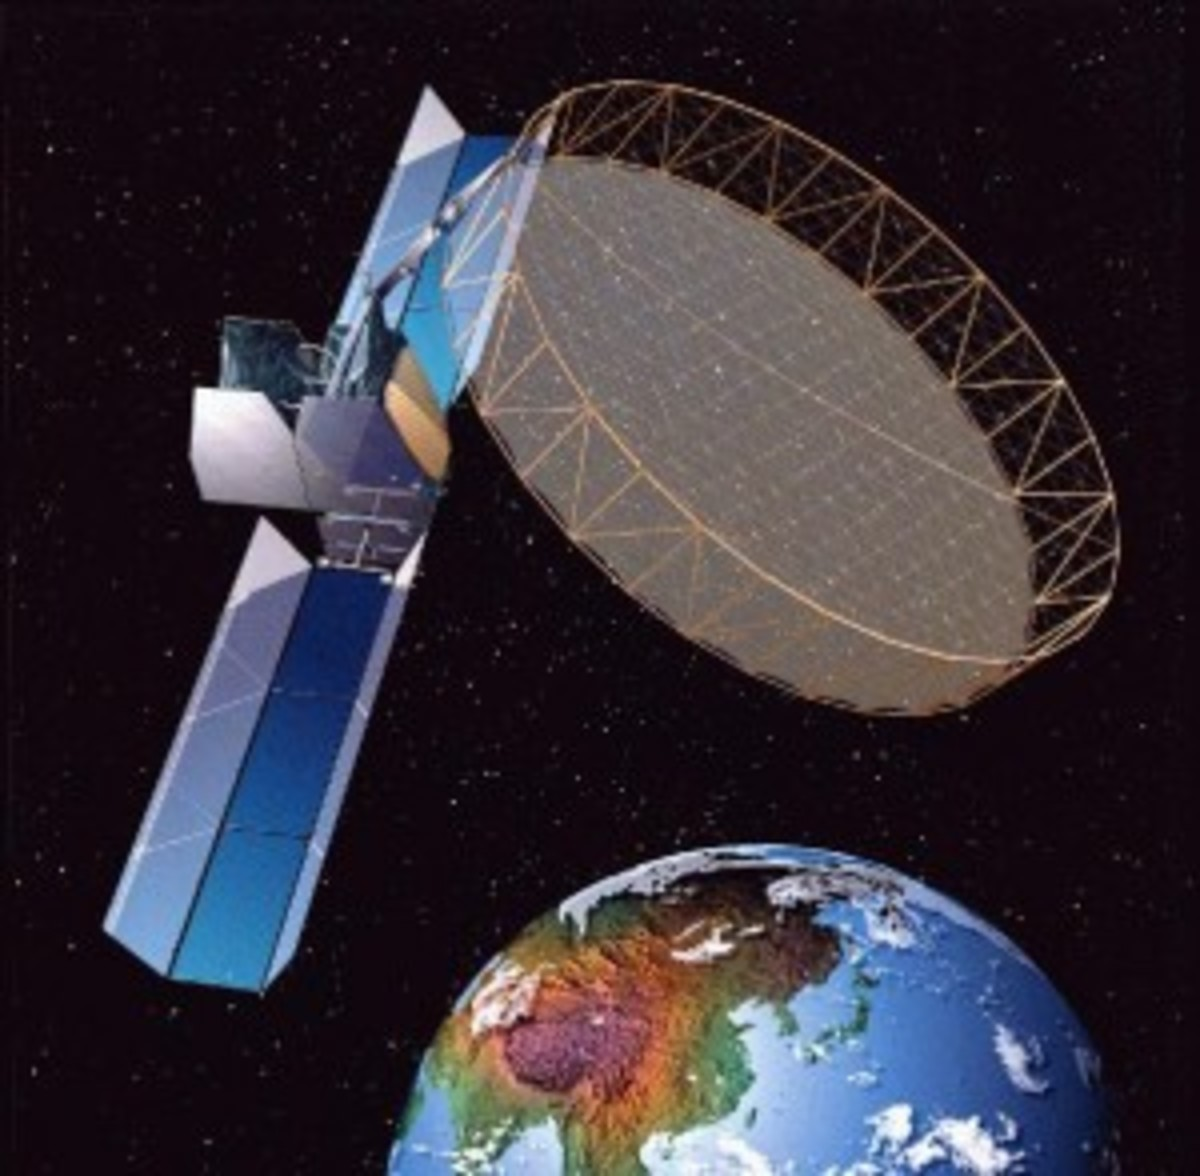 Japan has launched a next-genertion spy satellite as part of efforts to beef up its surveillance against the threat of North Korea's missiles